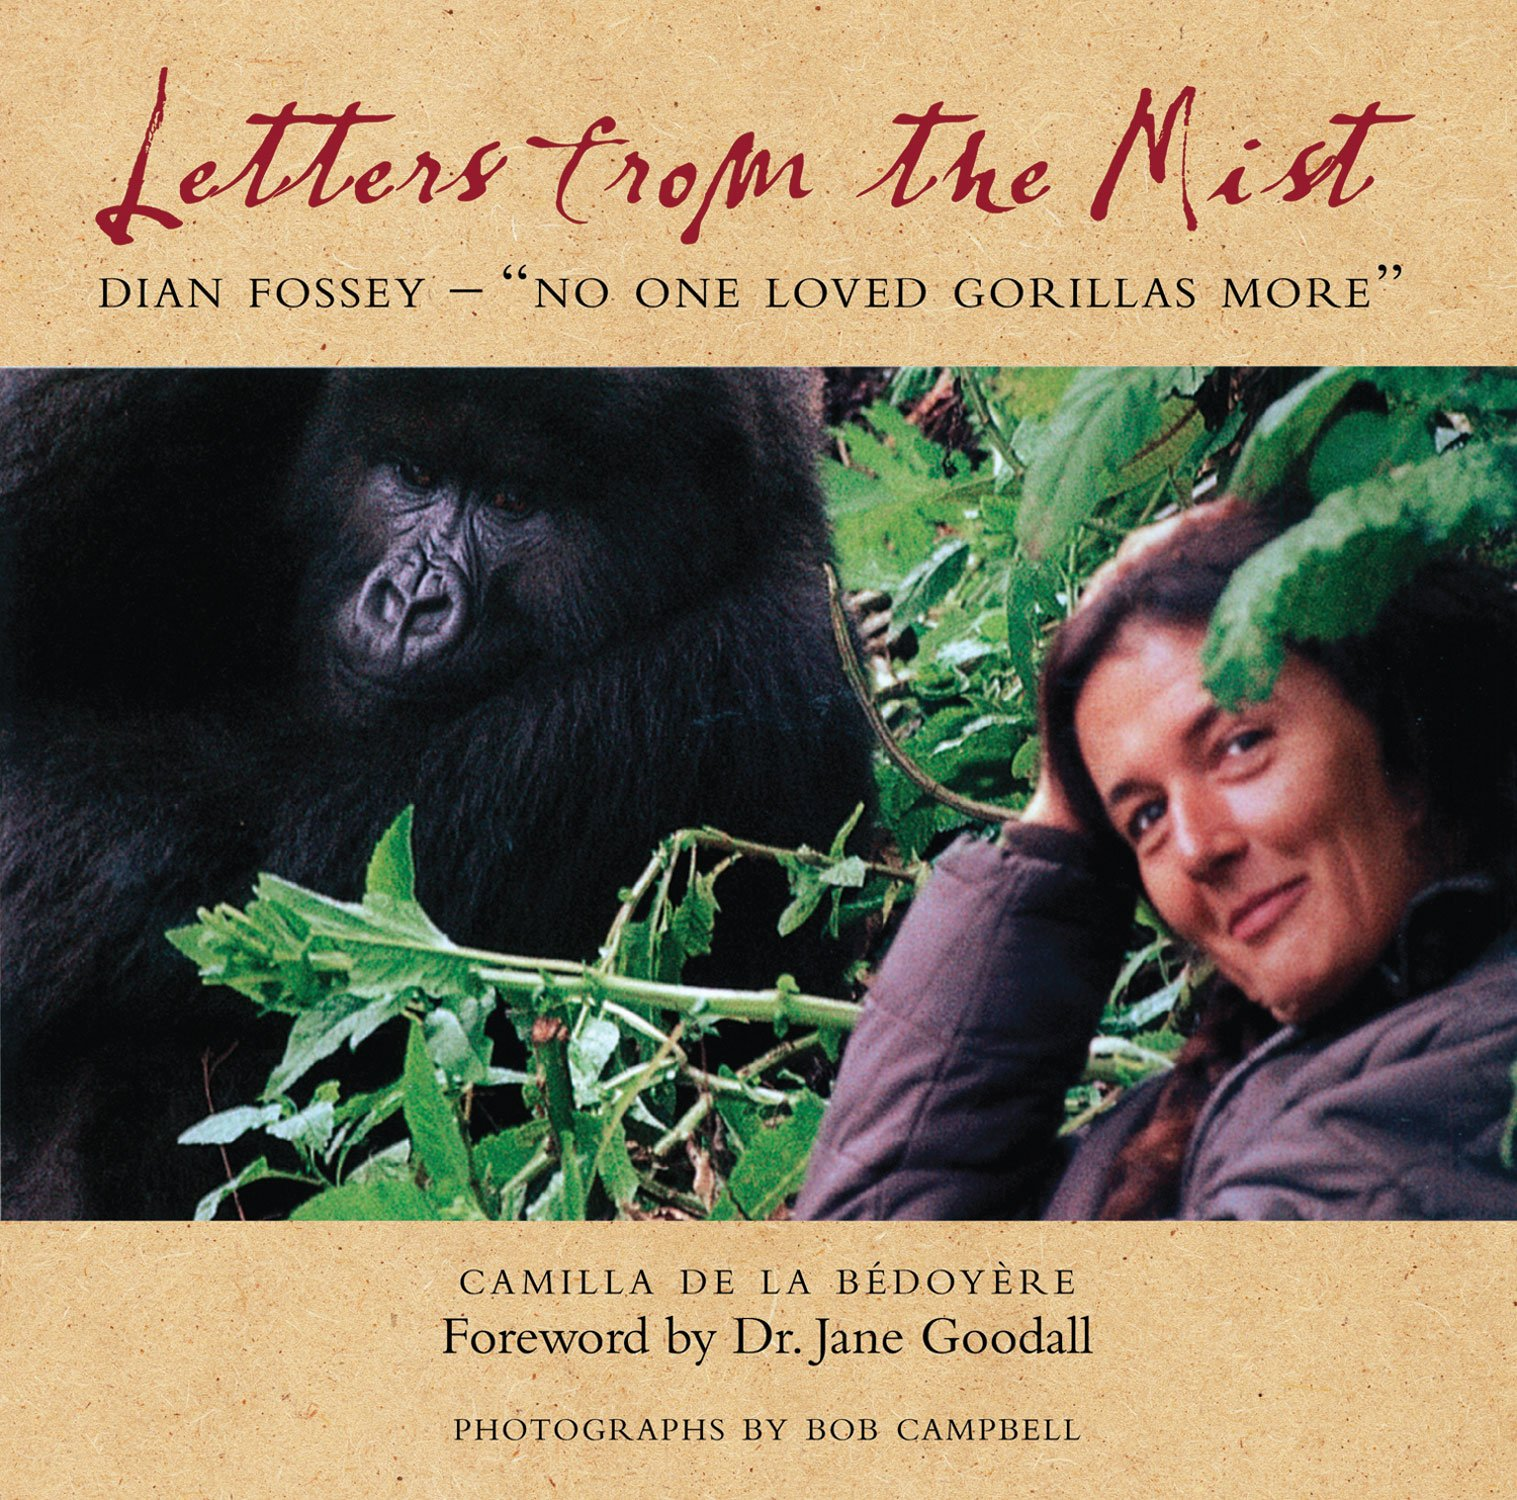 Letters from the mist dian fossey no one loved gorillas more camilla de la b doy re bob campbell dr jane goodall 9780956444899 amazon com books